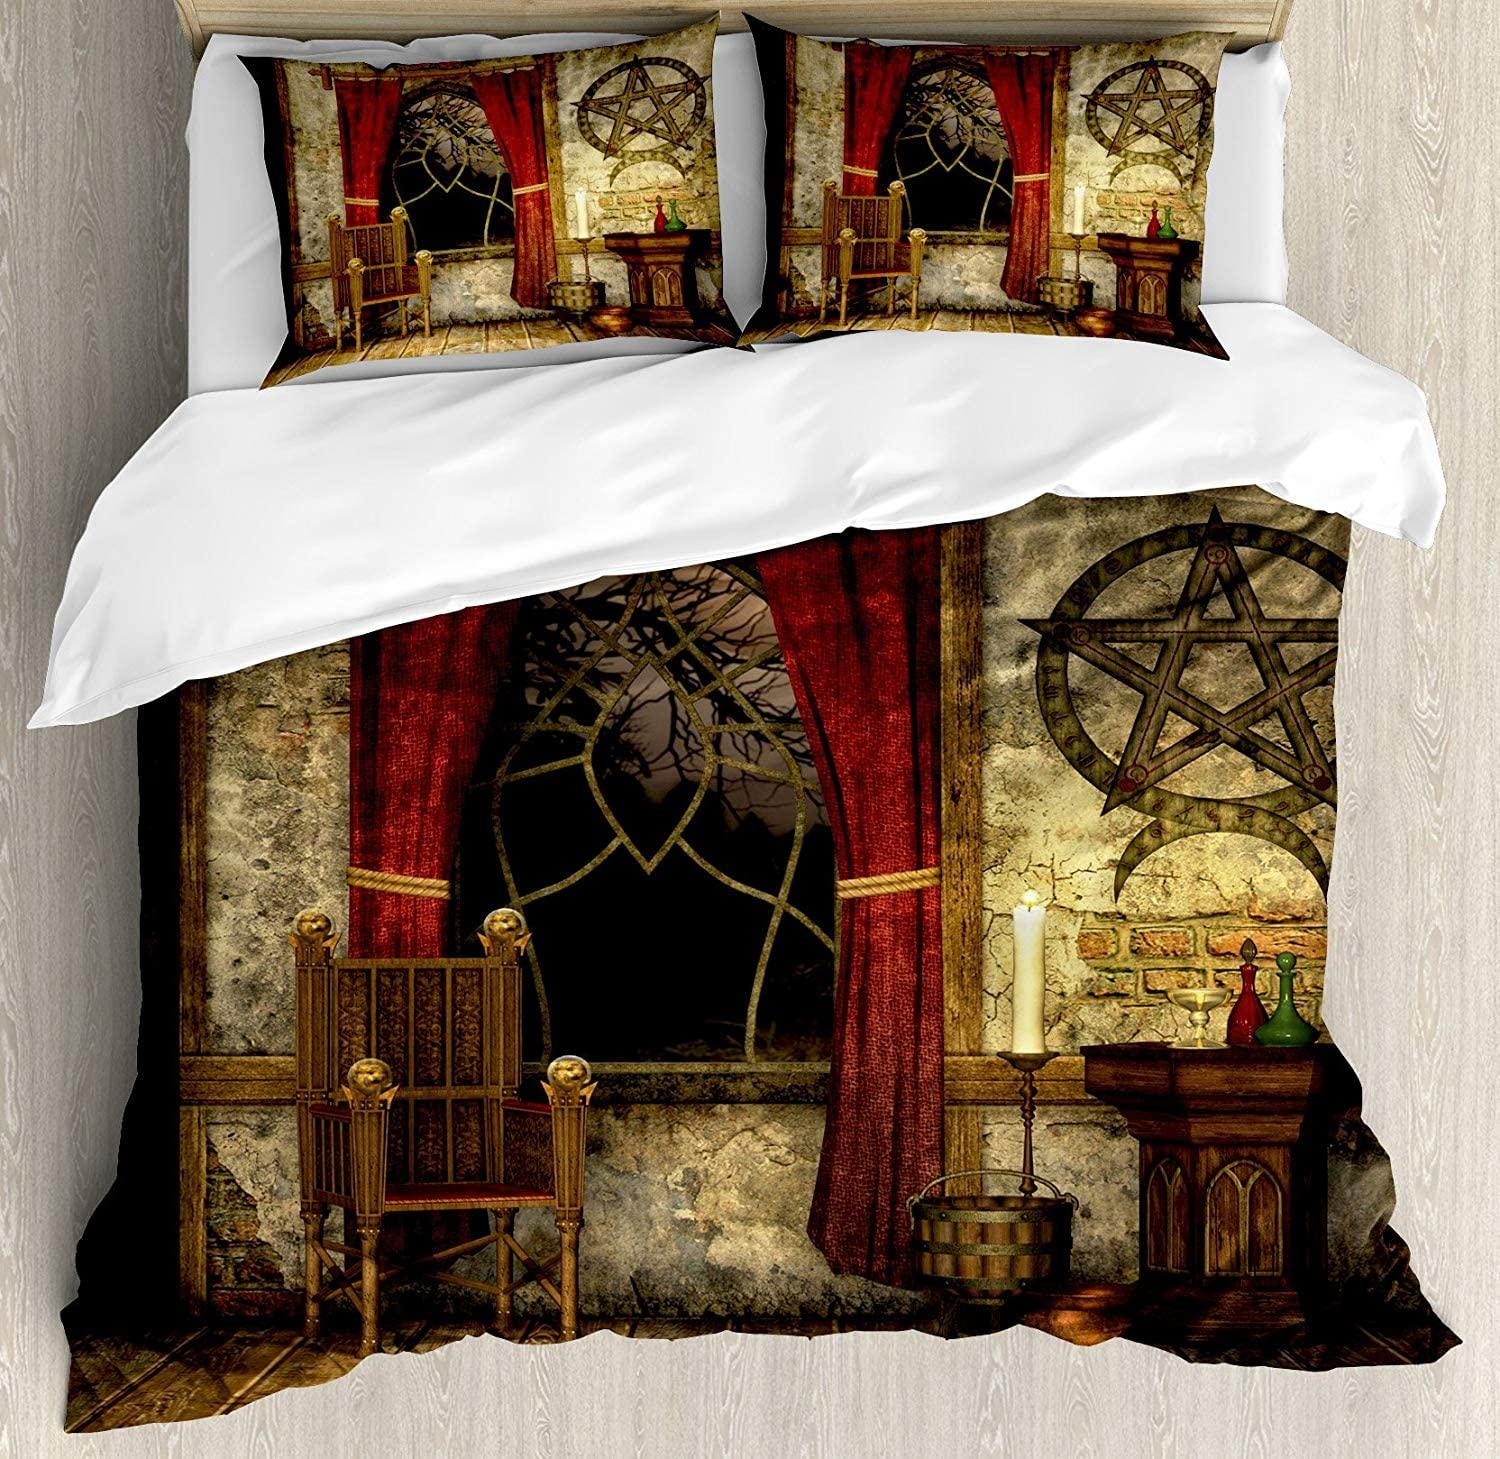 Gothic 3 Pieces Duvet Cover Set, Ancient Pentagram Symbol and Red Curtains in Mystical Medieval Chamber Spiritual Theme, Decorative Bedding Sets, Comforter Cover with 2 Pillow Shams, Brown,King Size